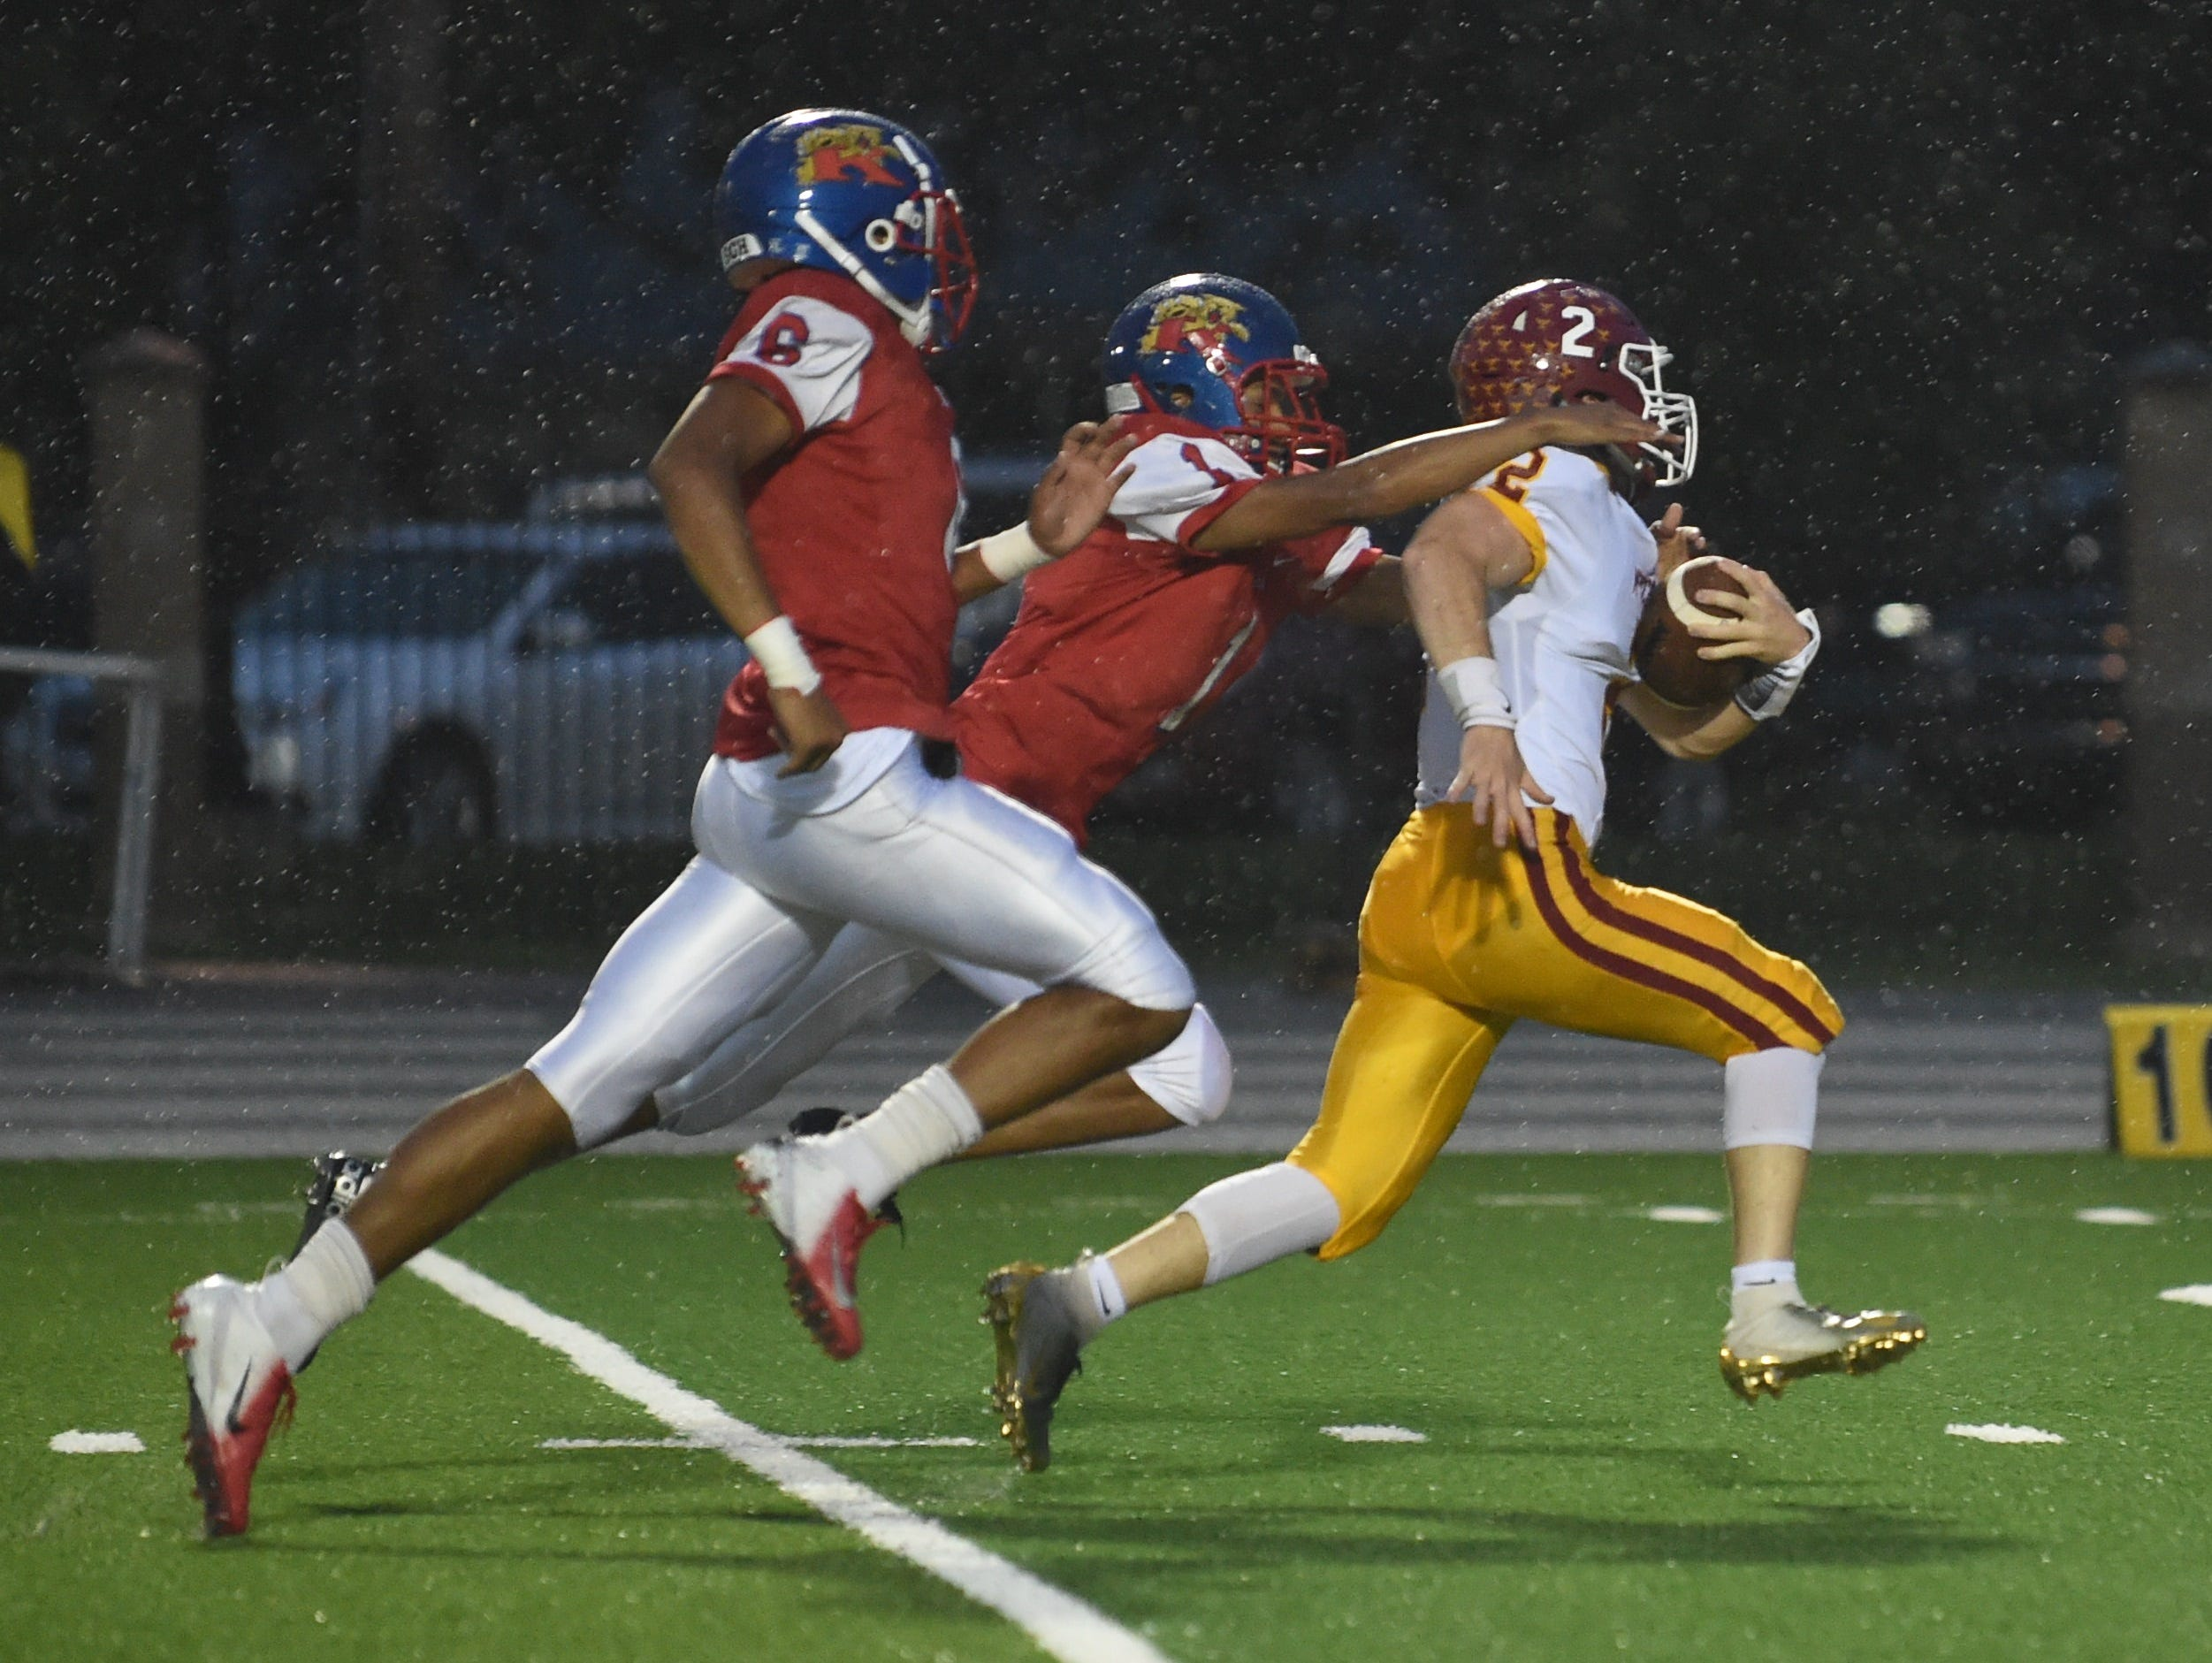 A rainy night of football in Kokomo as the Mavericks skin the Wildkats. Peyton Williams.